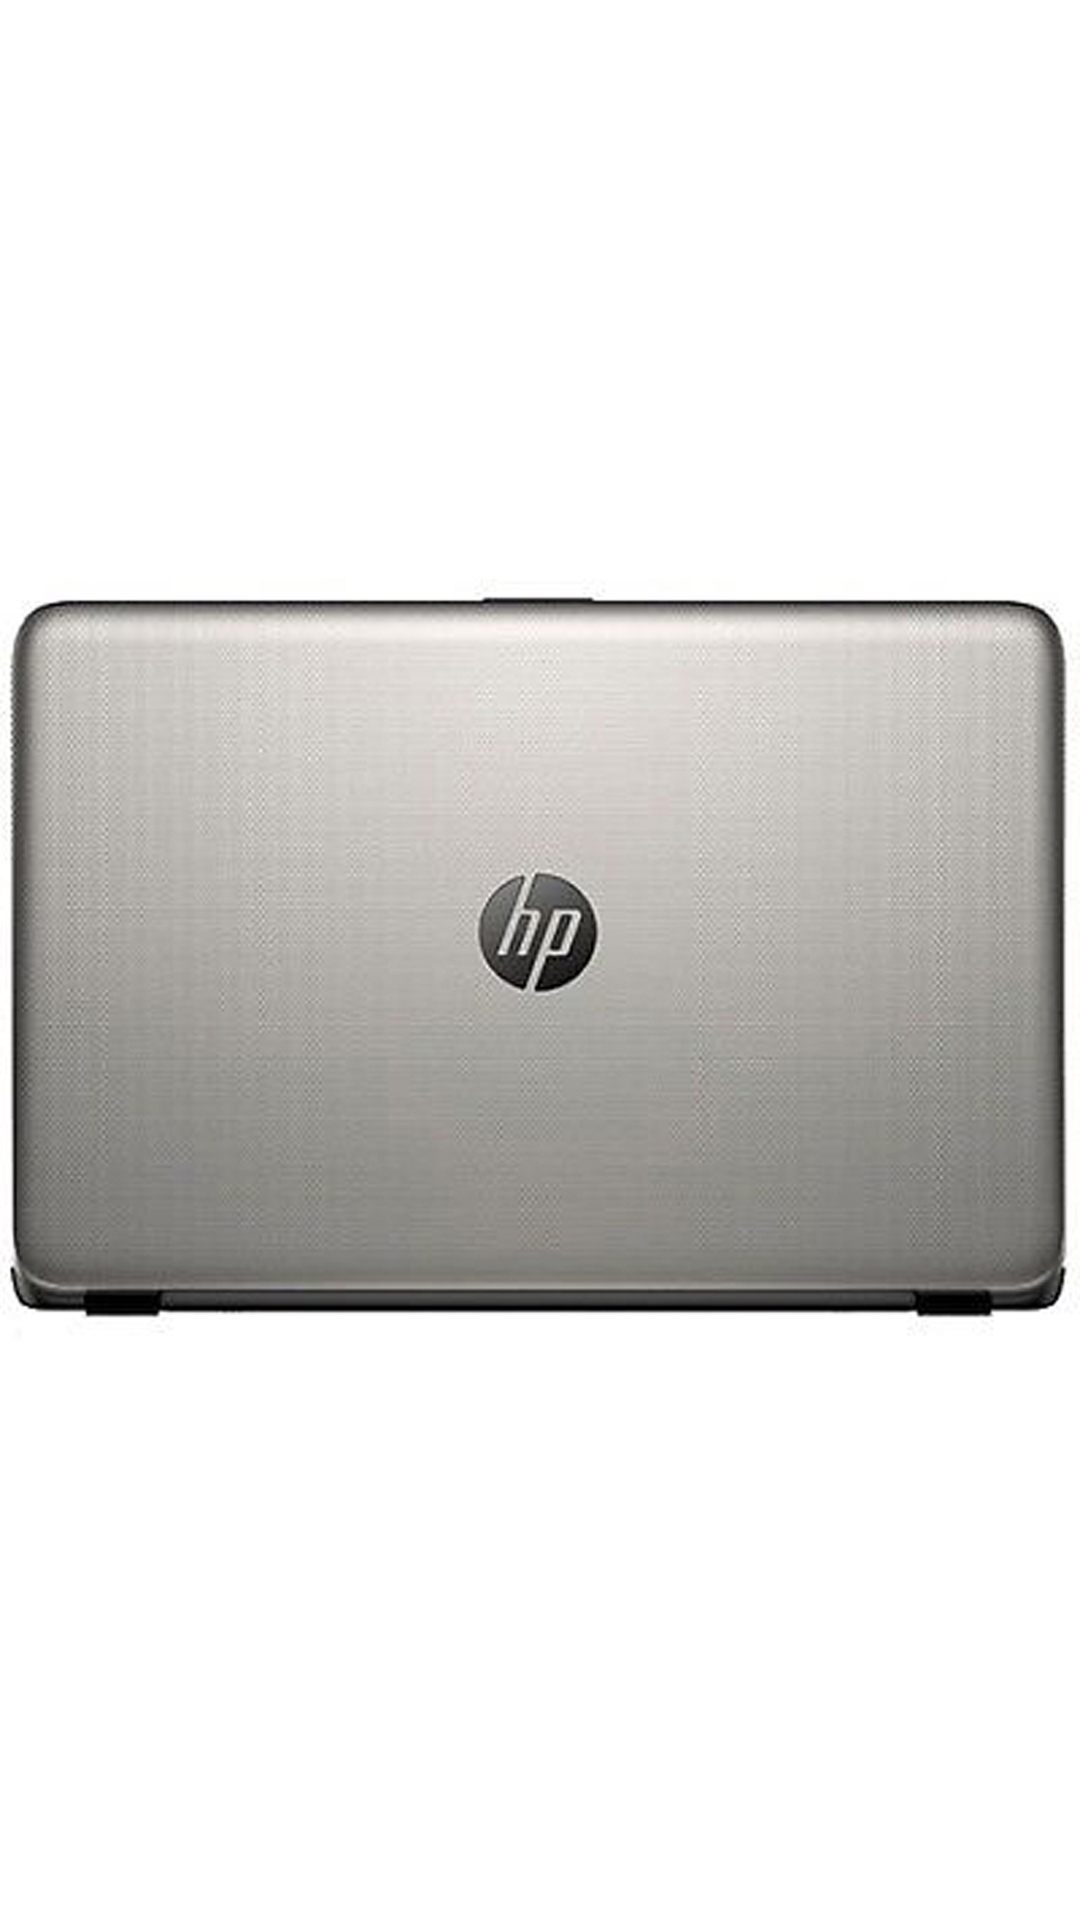 HP AC Notebook 15-ac120tx (N8M23PA) (Core i3 (5th Gen)/4 GB/1 TB/39.62 cm (15.6)/Free DOS/2 GB) (Silver)